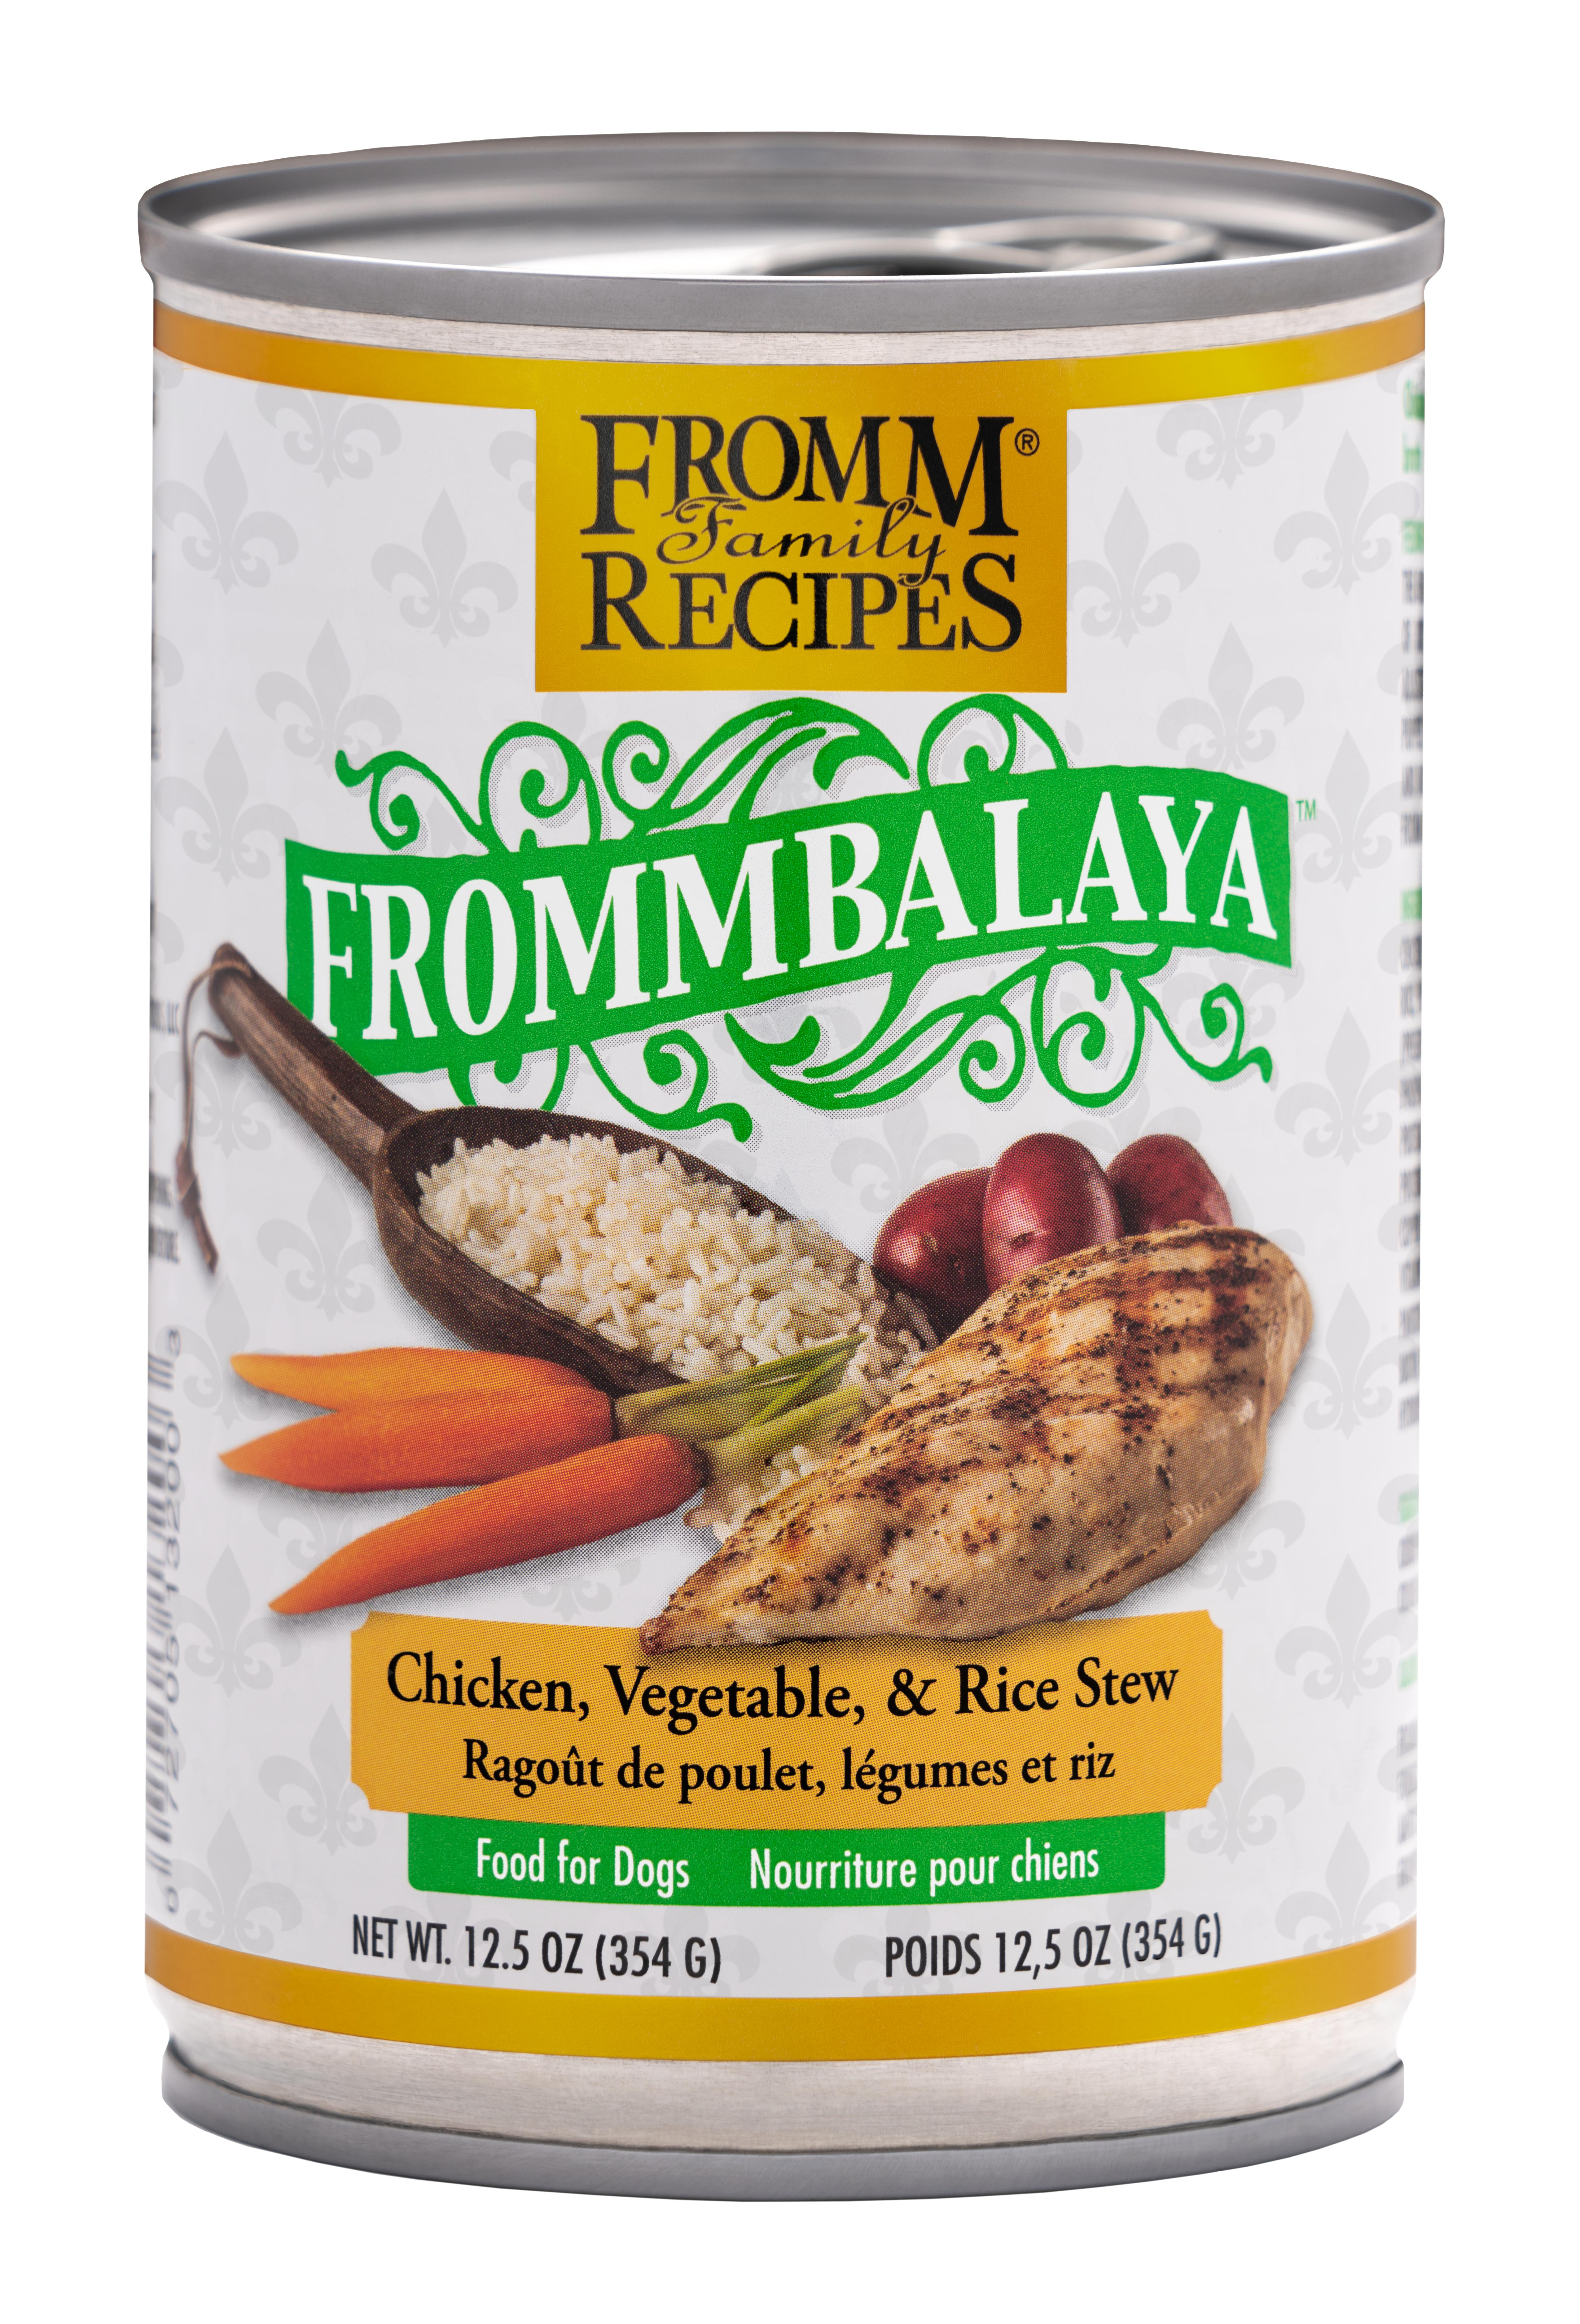 Fromm Family Recipes Frommbalaya Chicken, Vegetable & Rice Stew Canned Dog Food, 12.5-oz